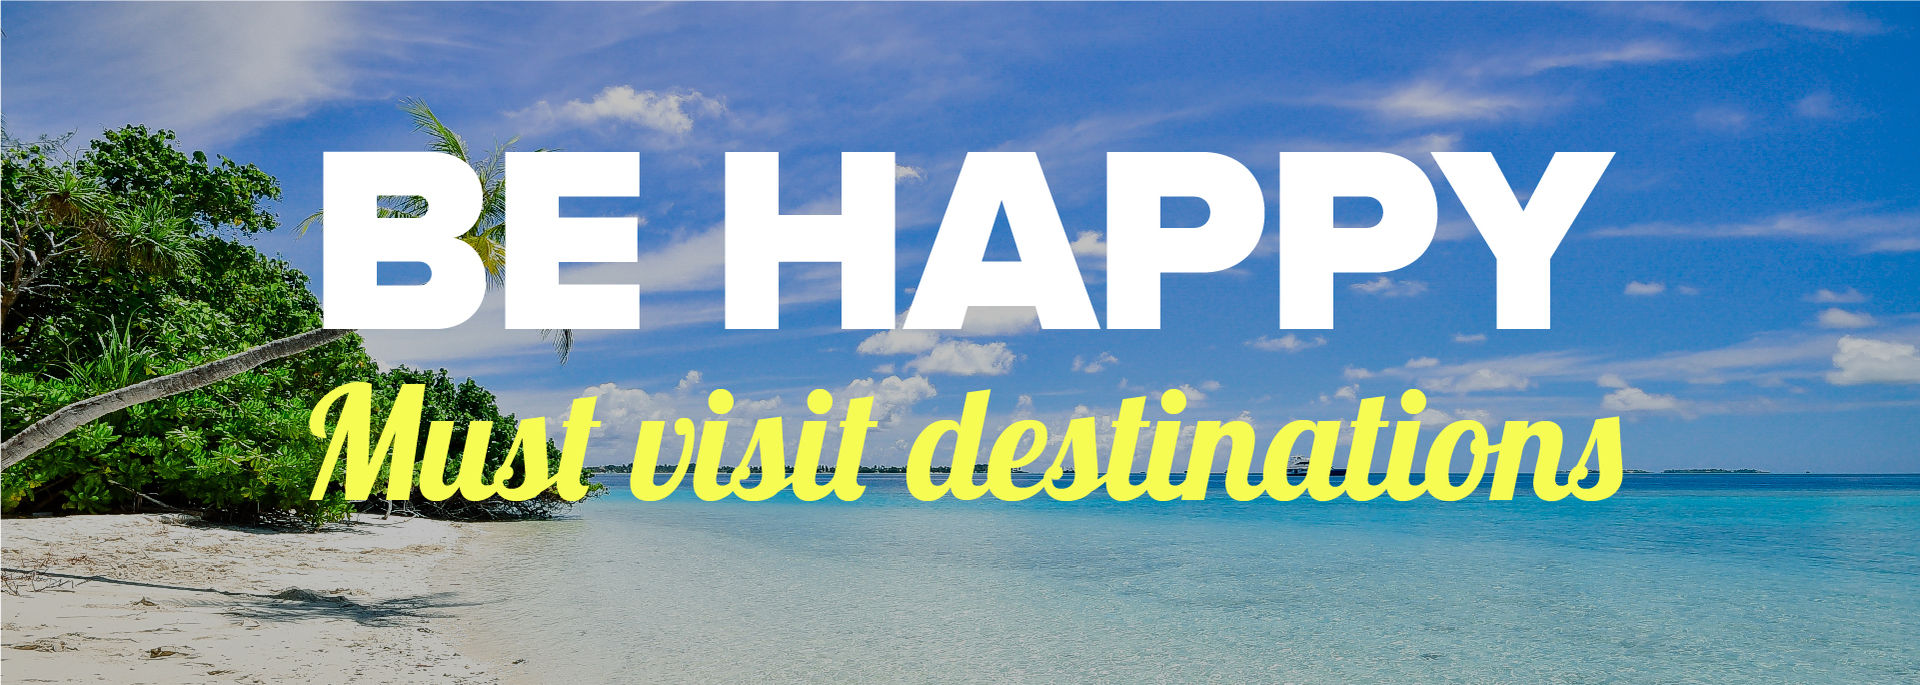 BE Happy - Must visit destinations